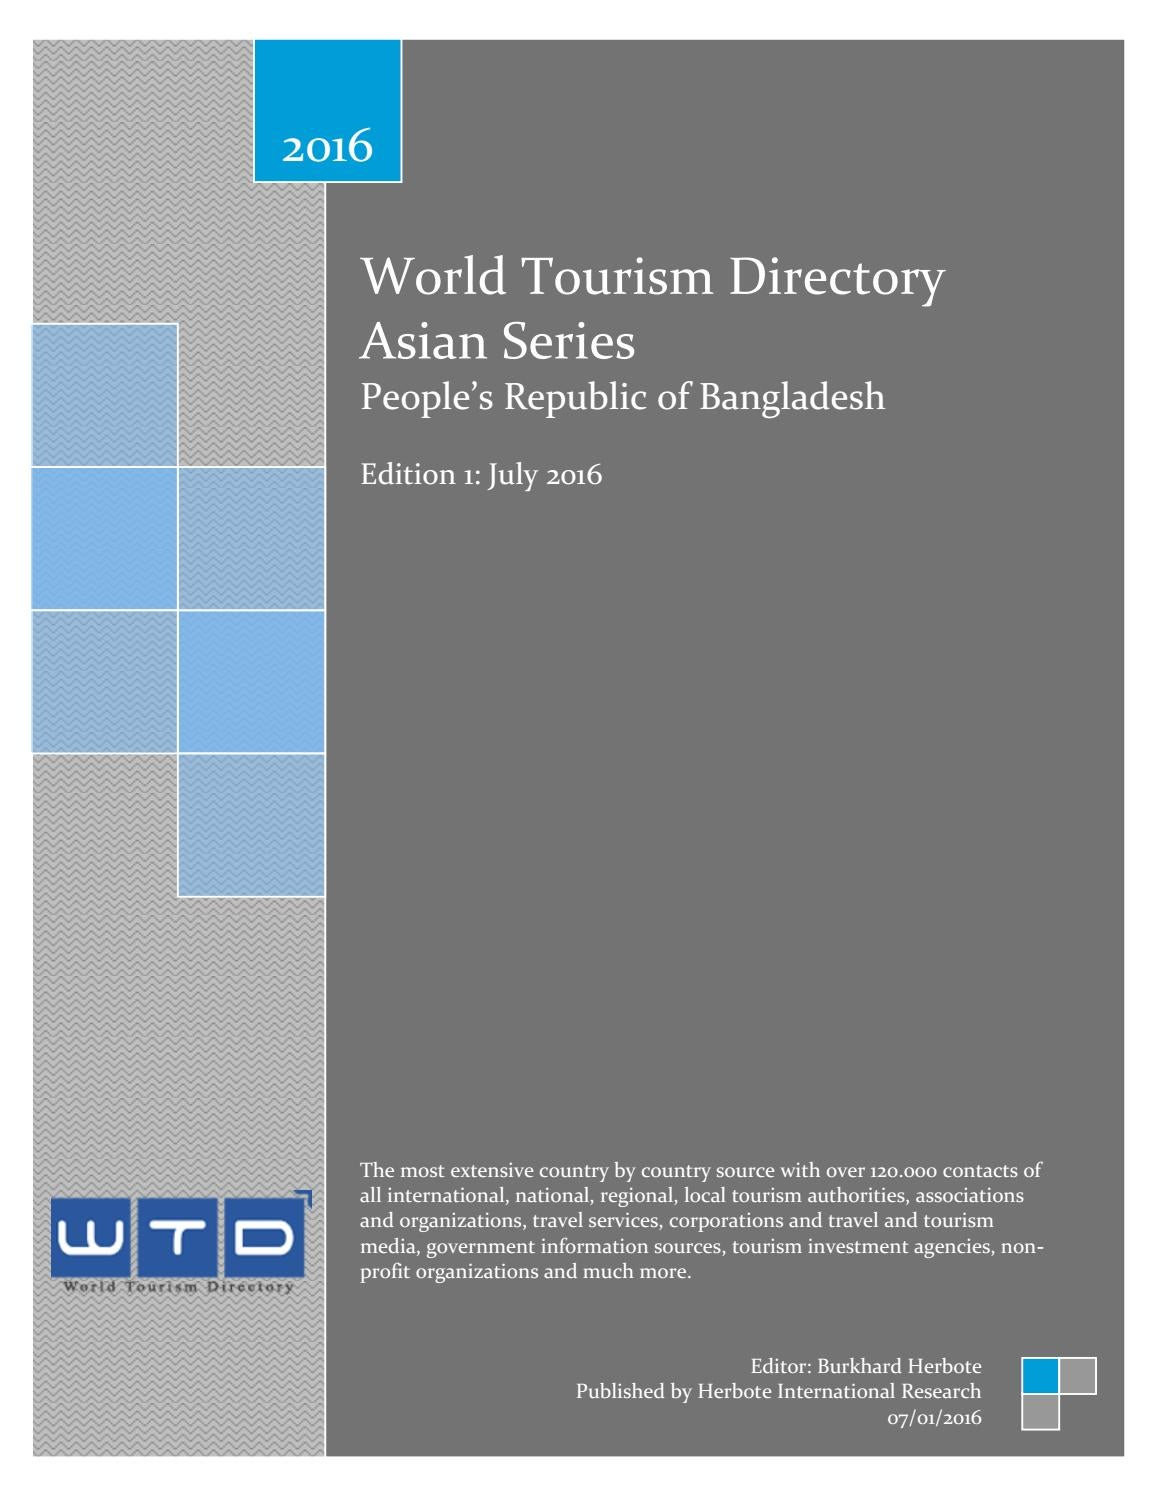 WTD Bangladesh Tourism Directory by World Tourism Directory